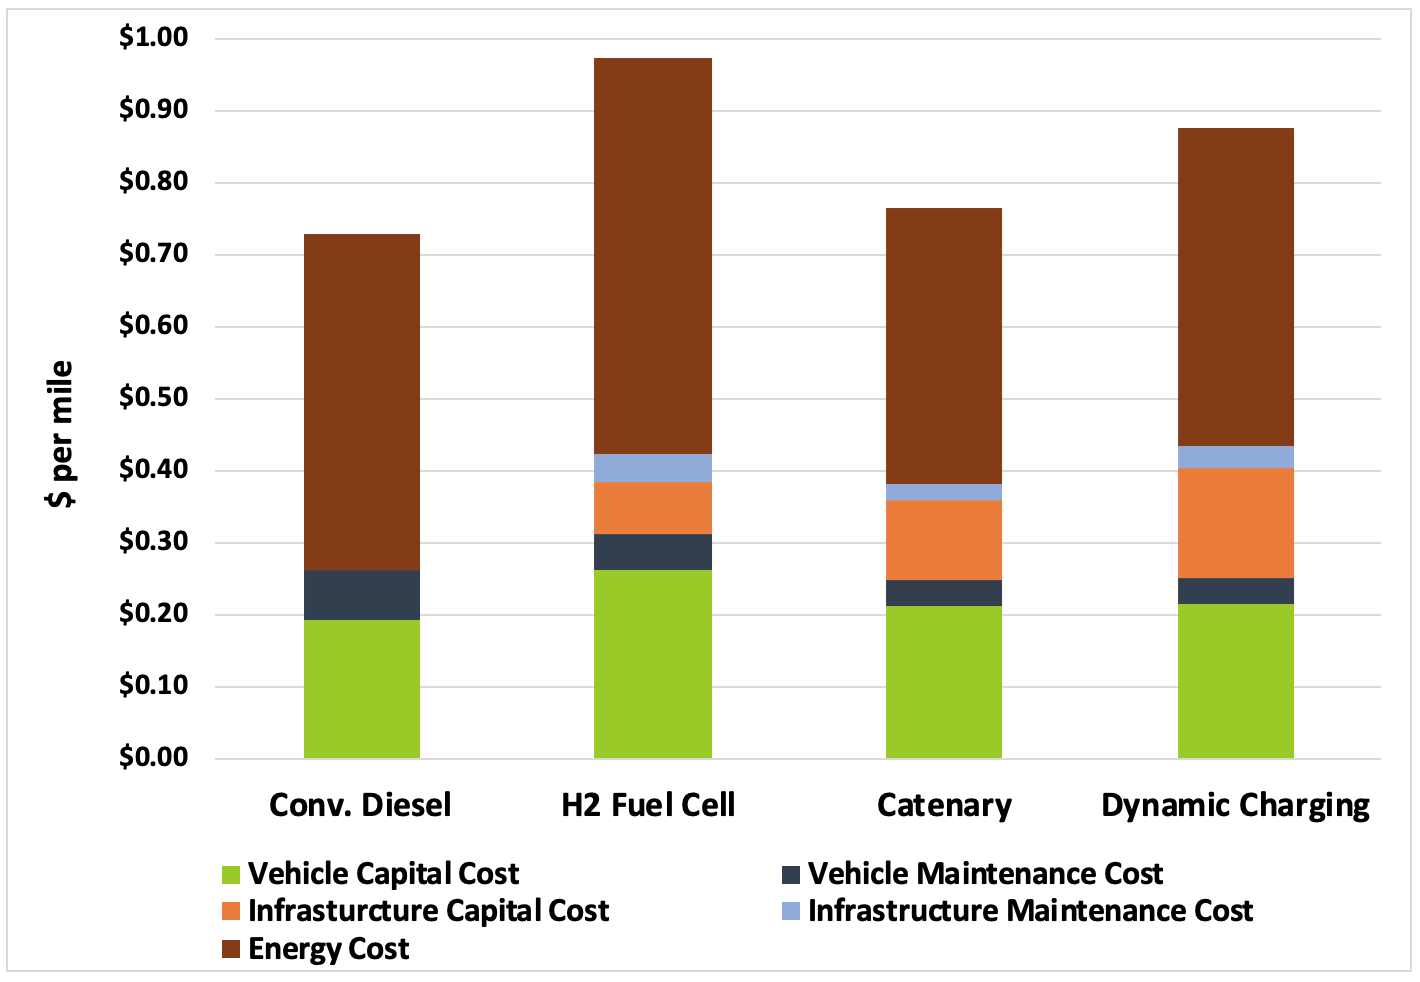 Relative cost per mile of different technologies based on 500 miles of roadway.